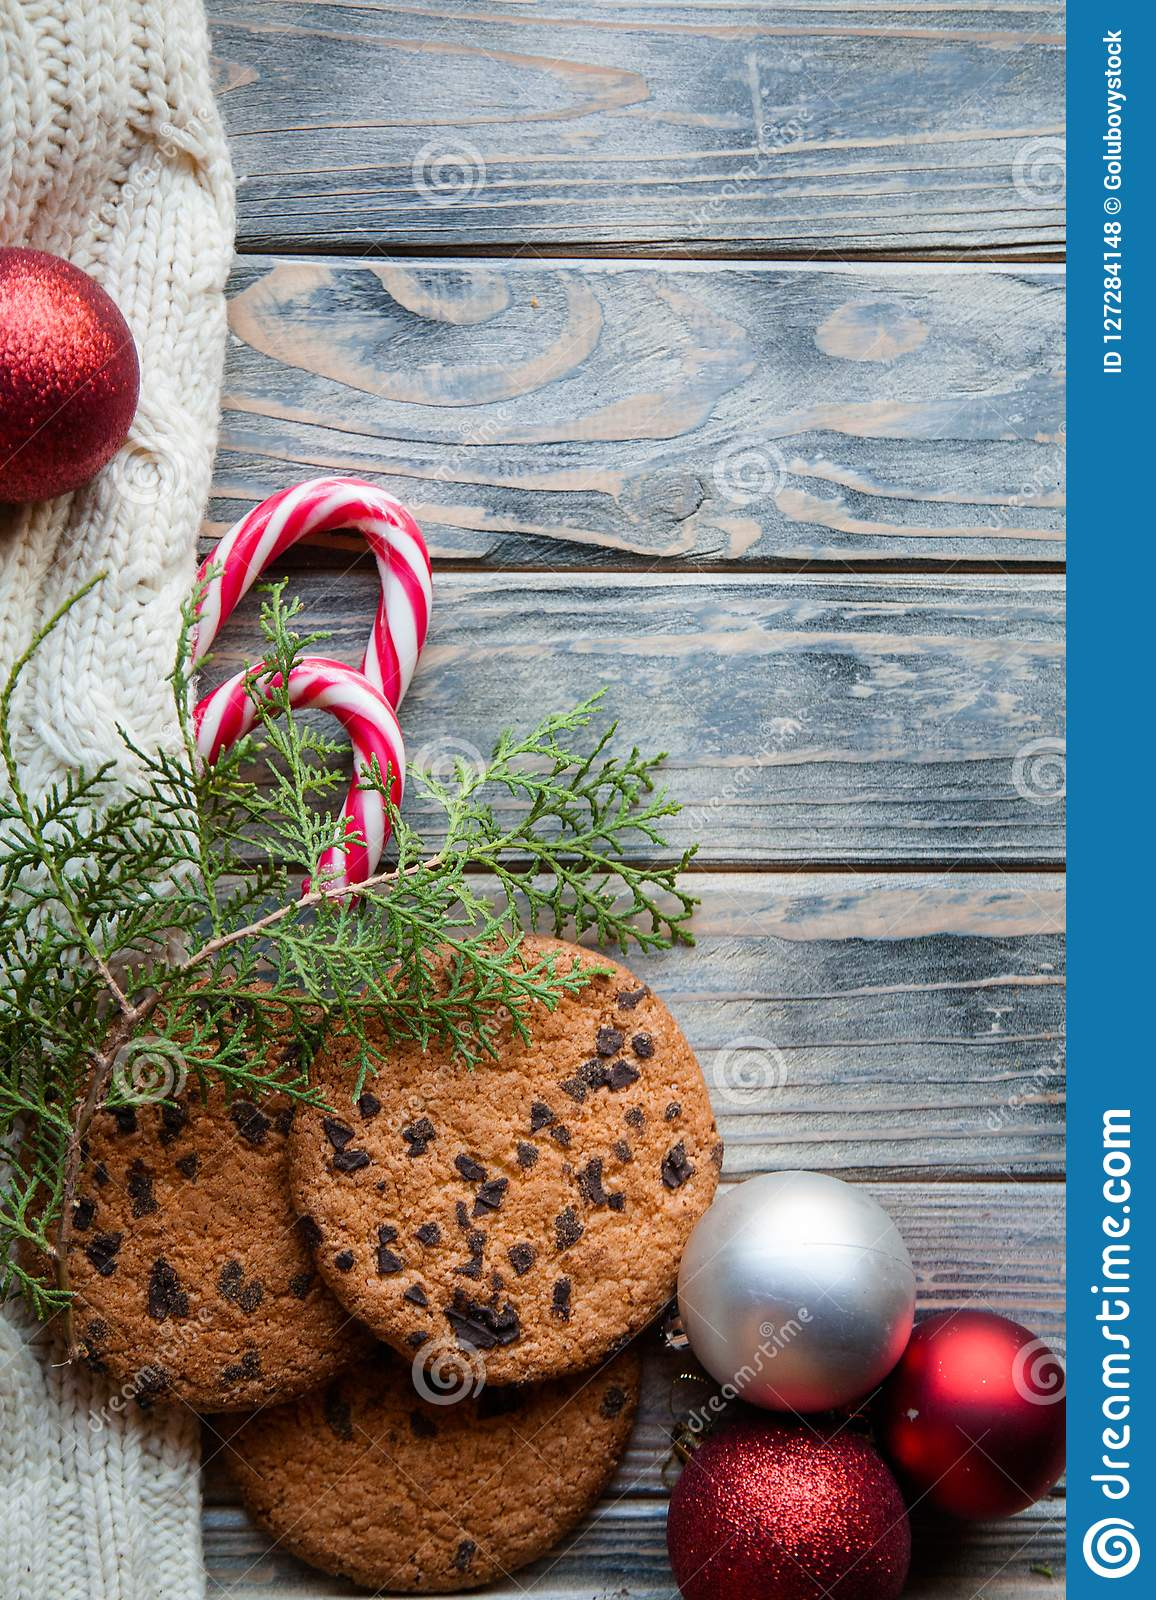 Christmas Food Snack Cookies Red Ball Decor Stock Photo - Image of ...